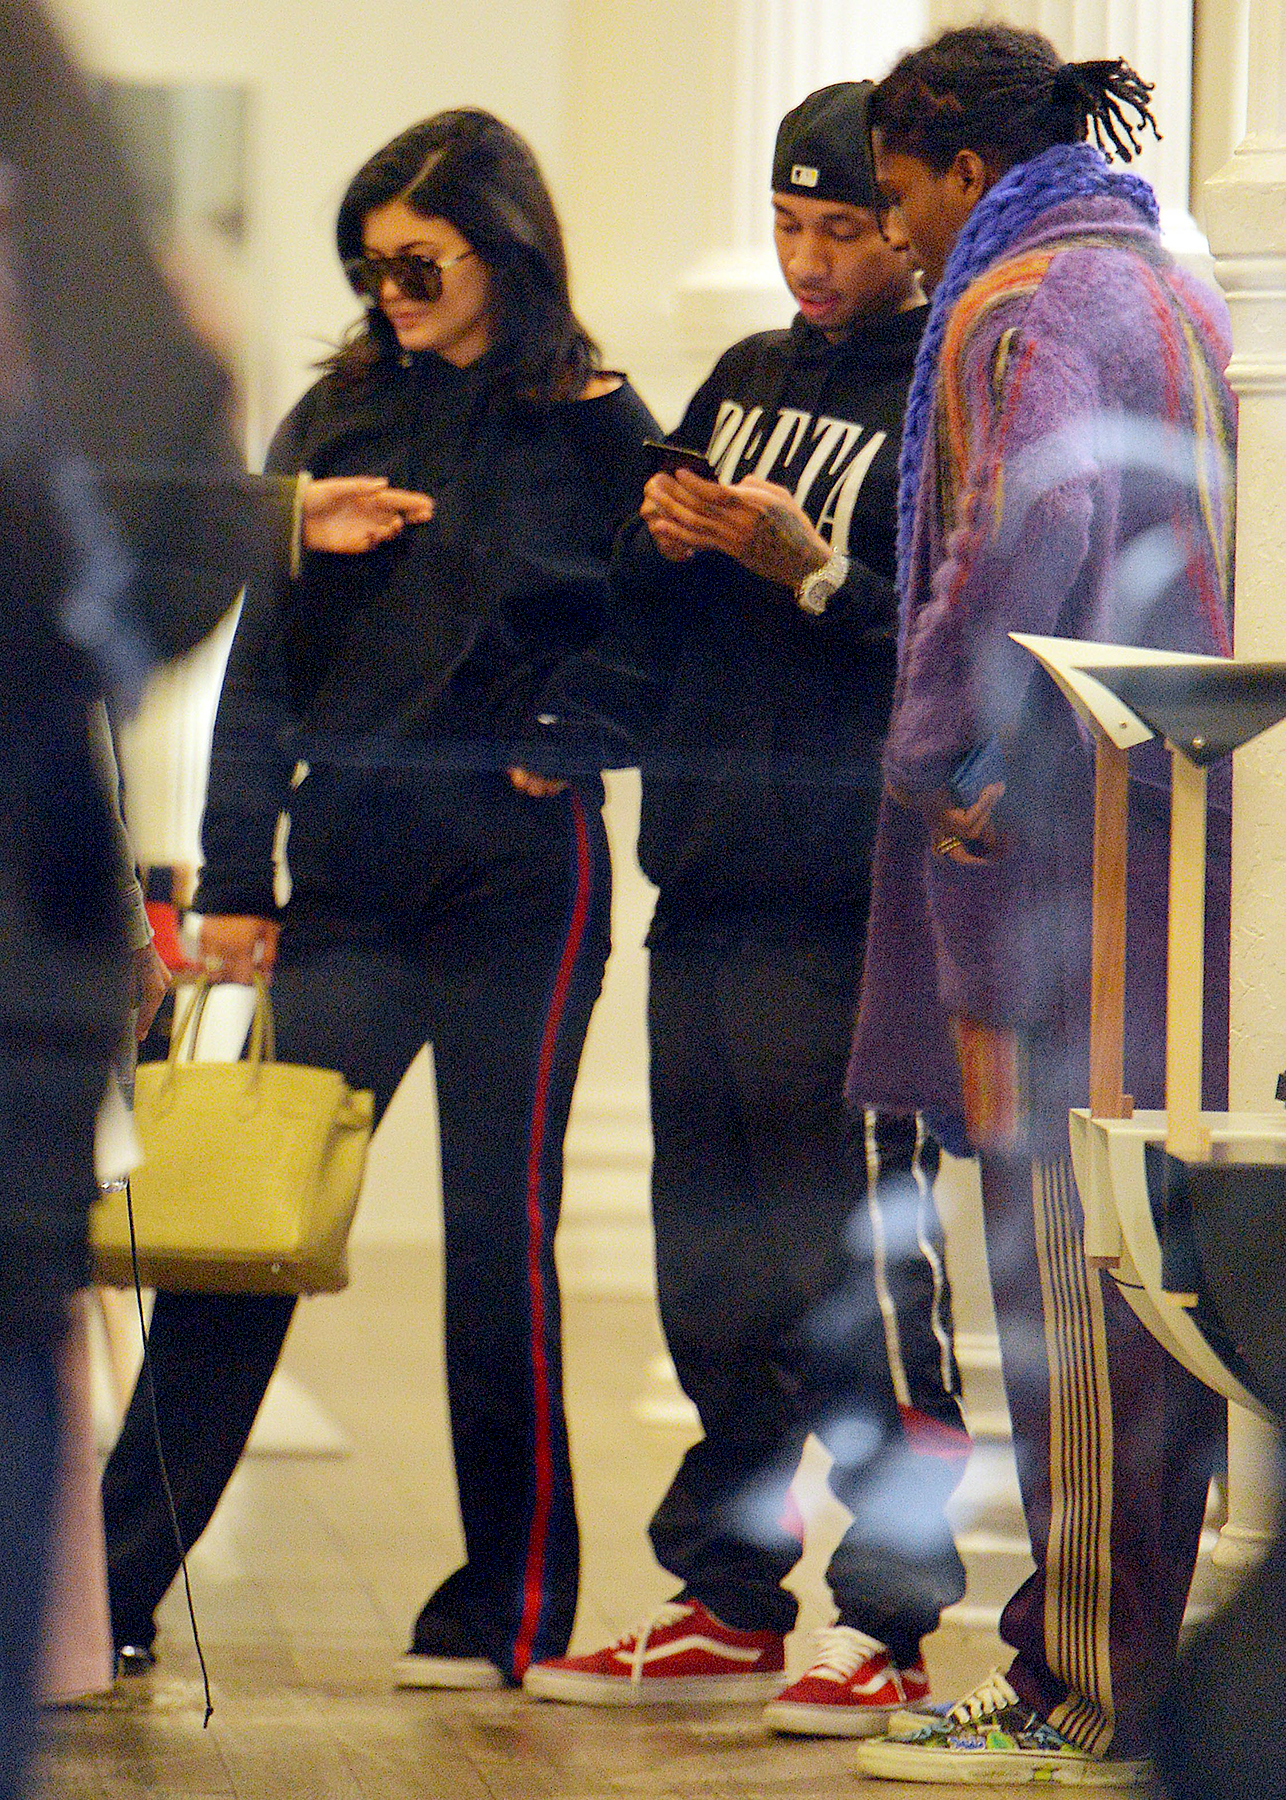 Kylie Jenner, Tyga, and A$AP Rocky (from left) are seen shopping in Manhattan on January 17, 2017 in New York City.